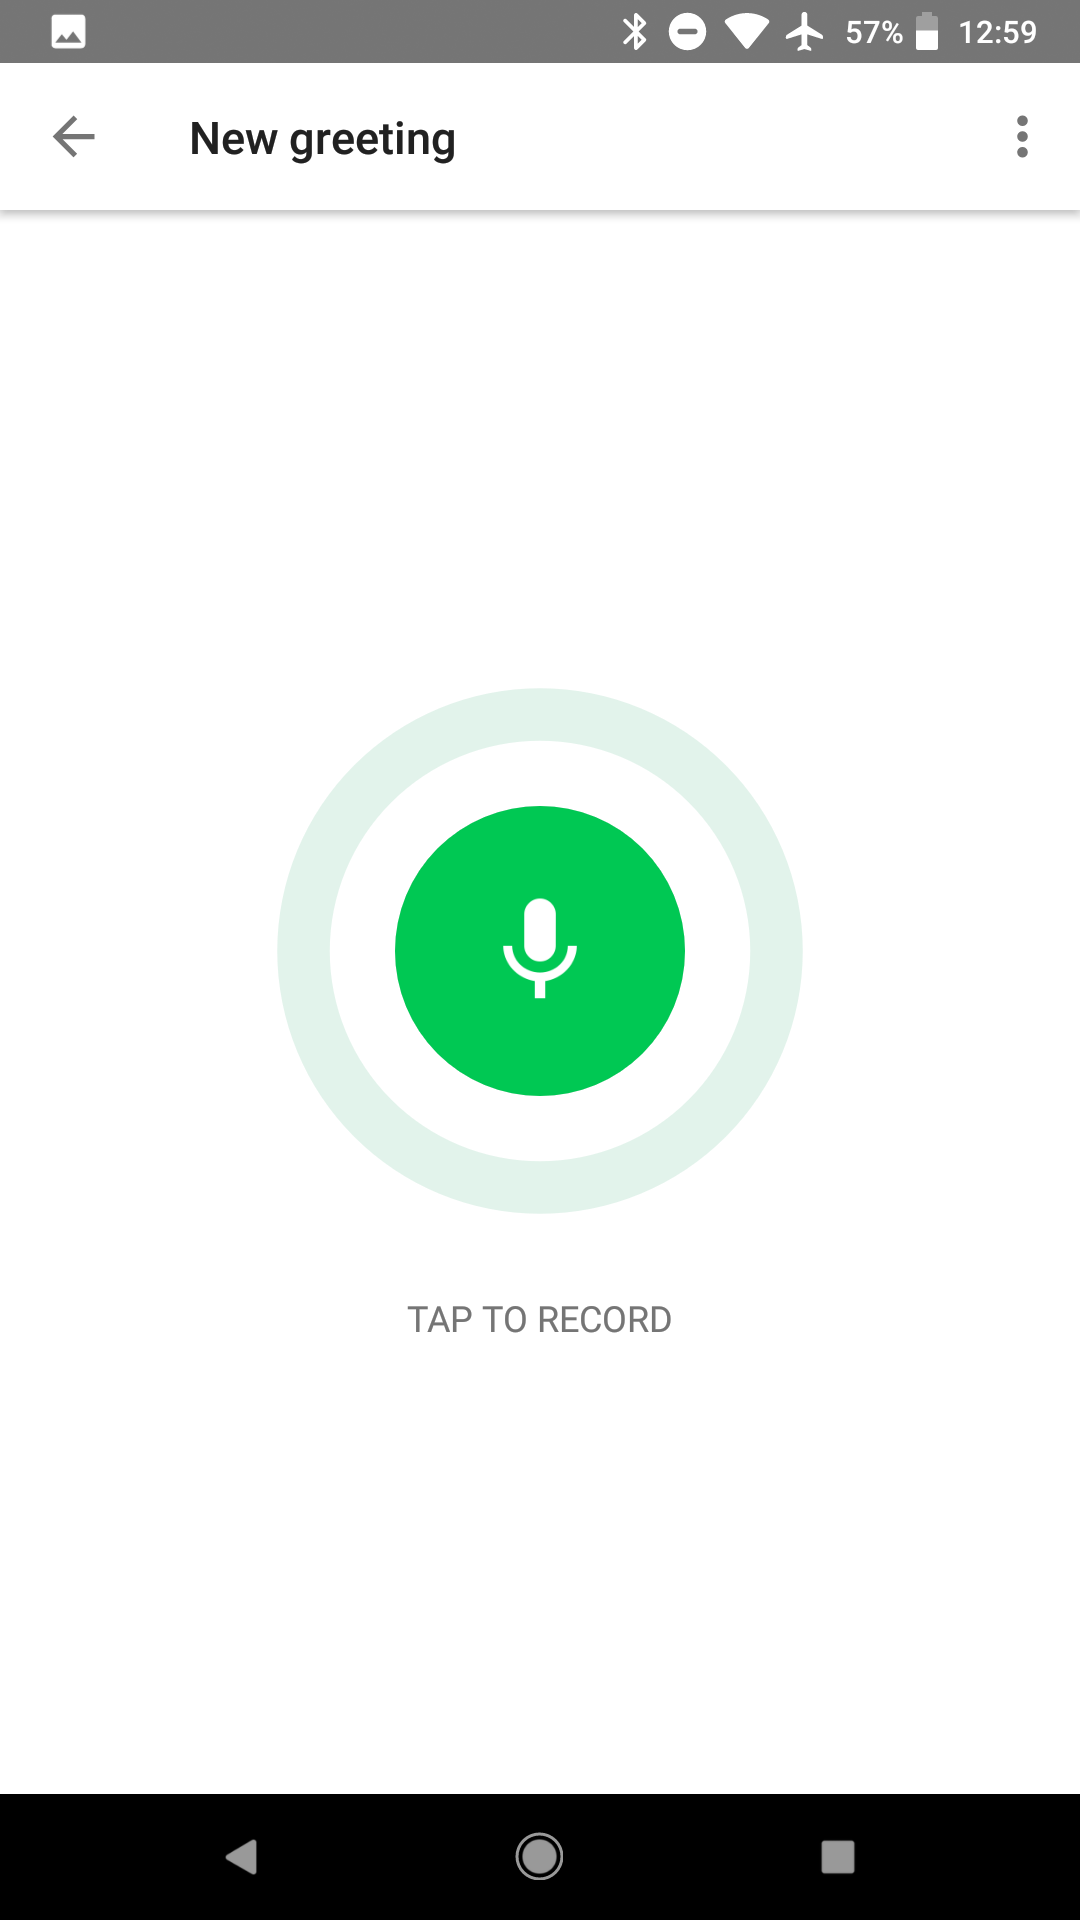 Google voice now lets you record voicemail greetings on android and google voice 5 10 voicemail 1 m4hsunfo